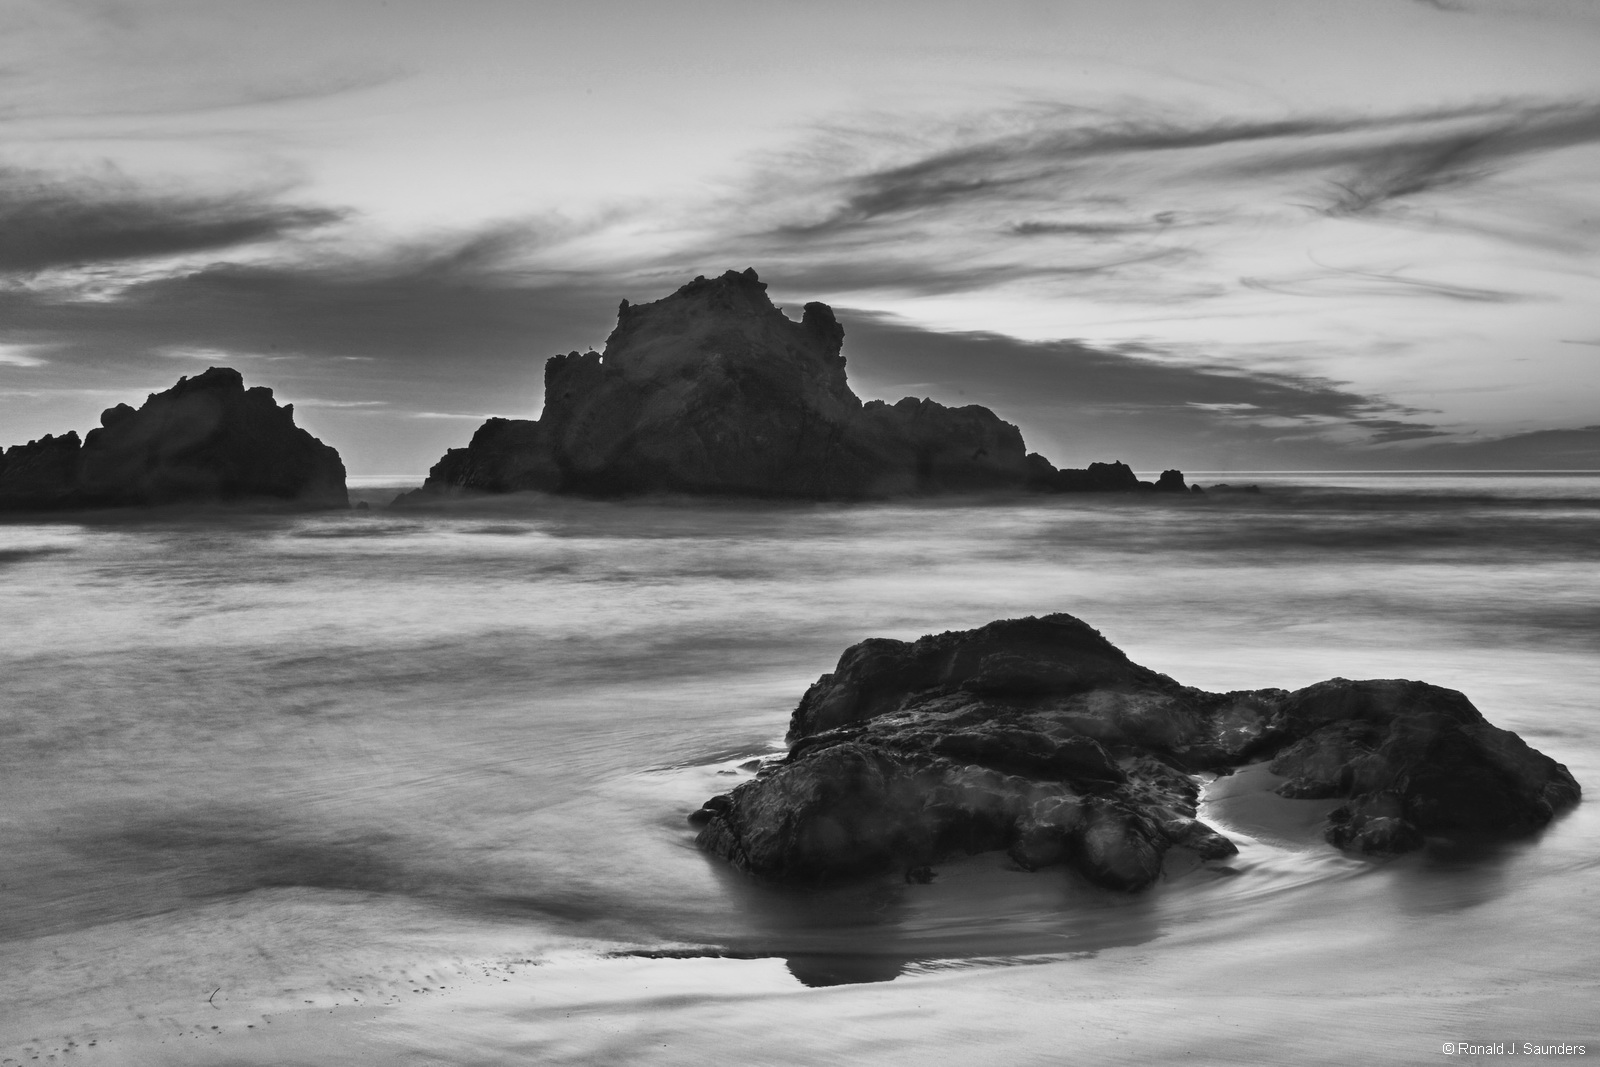 beach, black, white, sand, ocean, Pfeiffer, Big Sur, ronald, saunders, digital, photography, image, ronald, photo